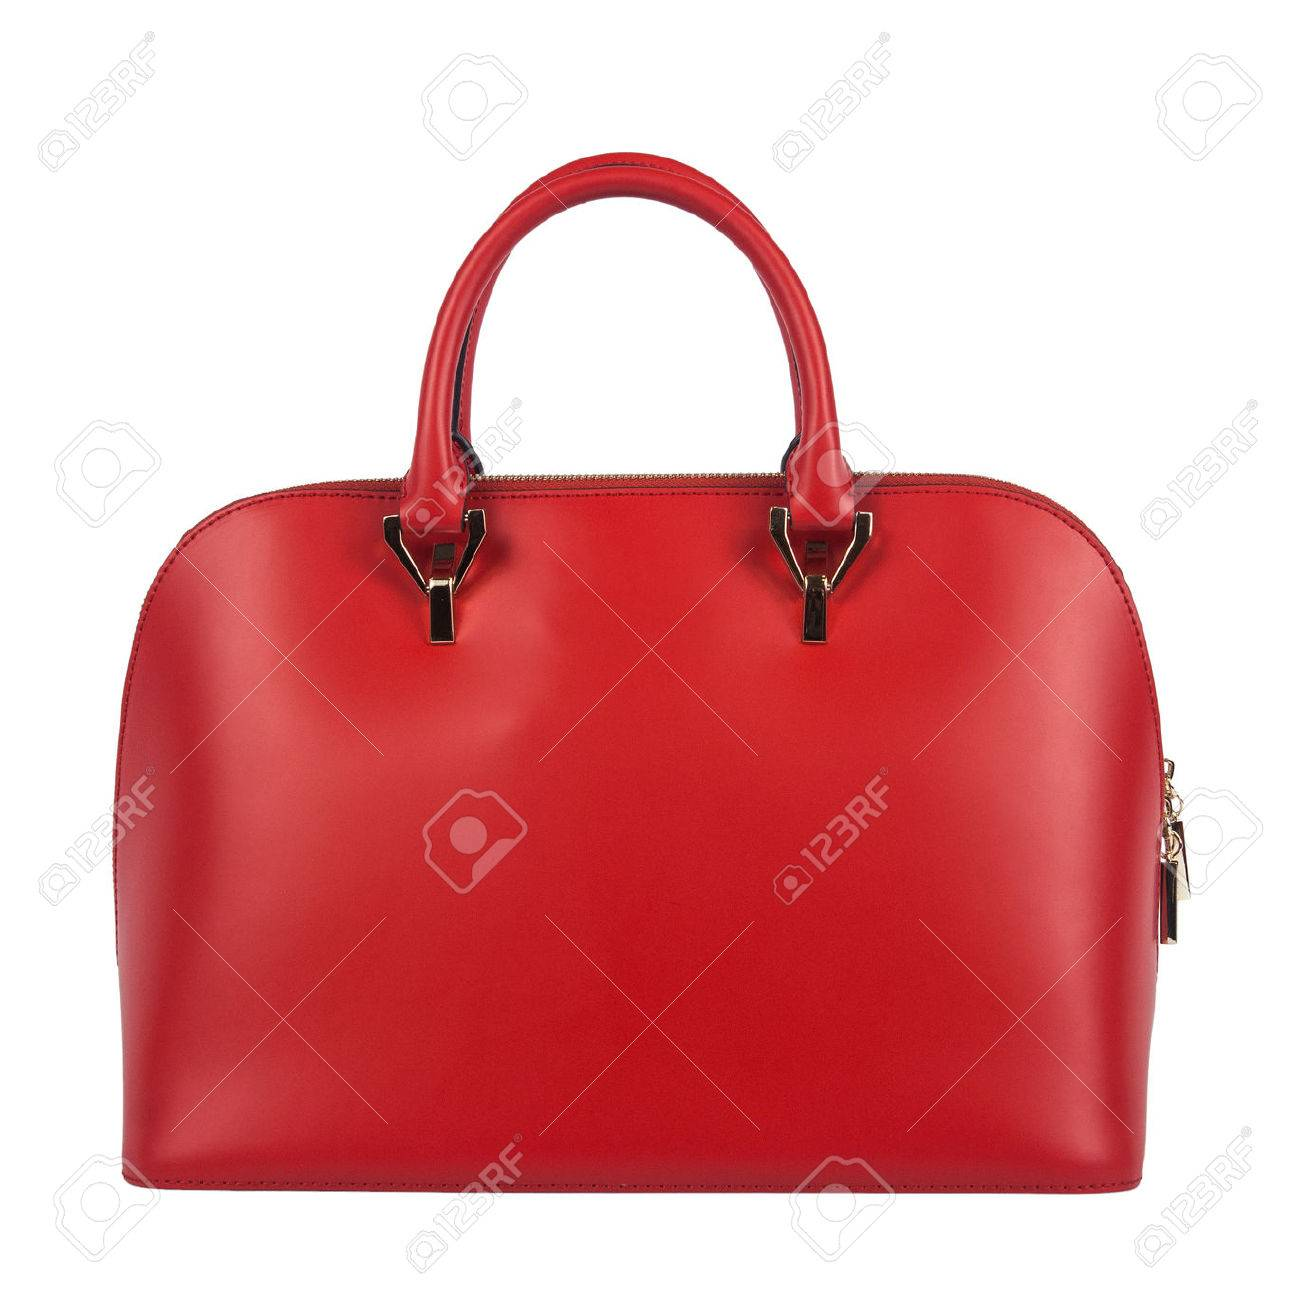 9e0f21737f8ea Red women bag isolated on white background Stock Photo - 45074257